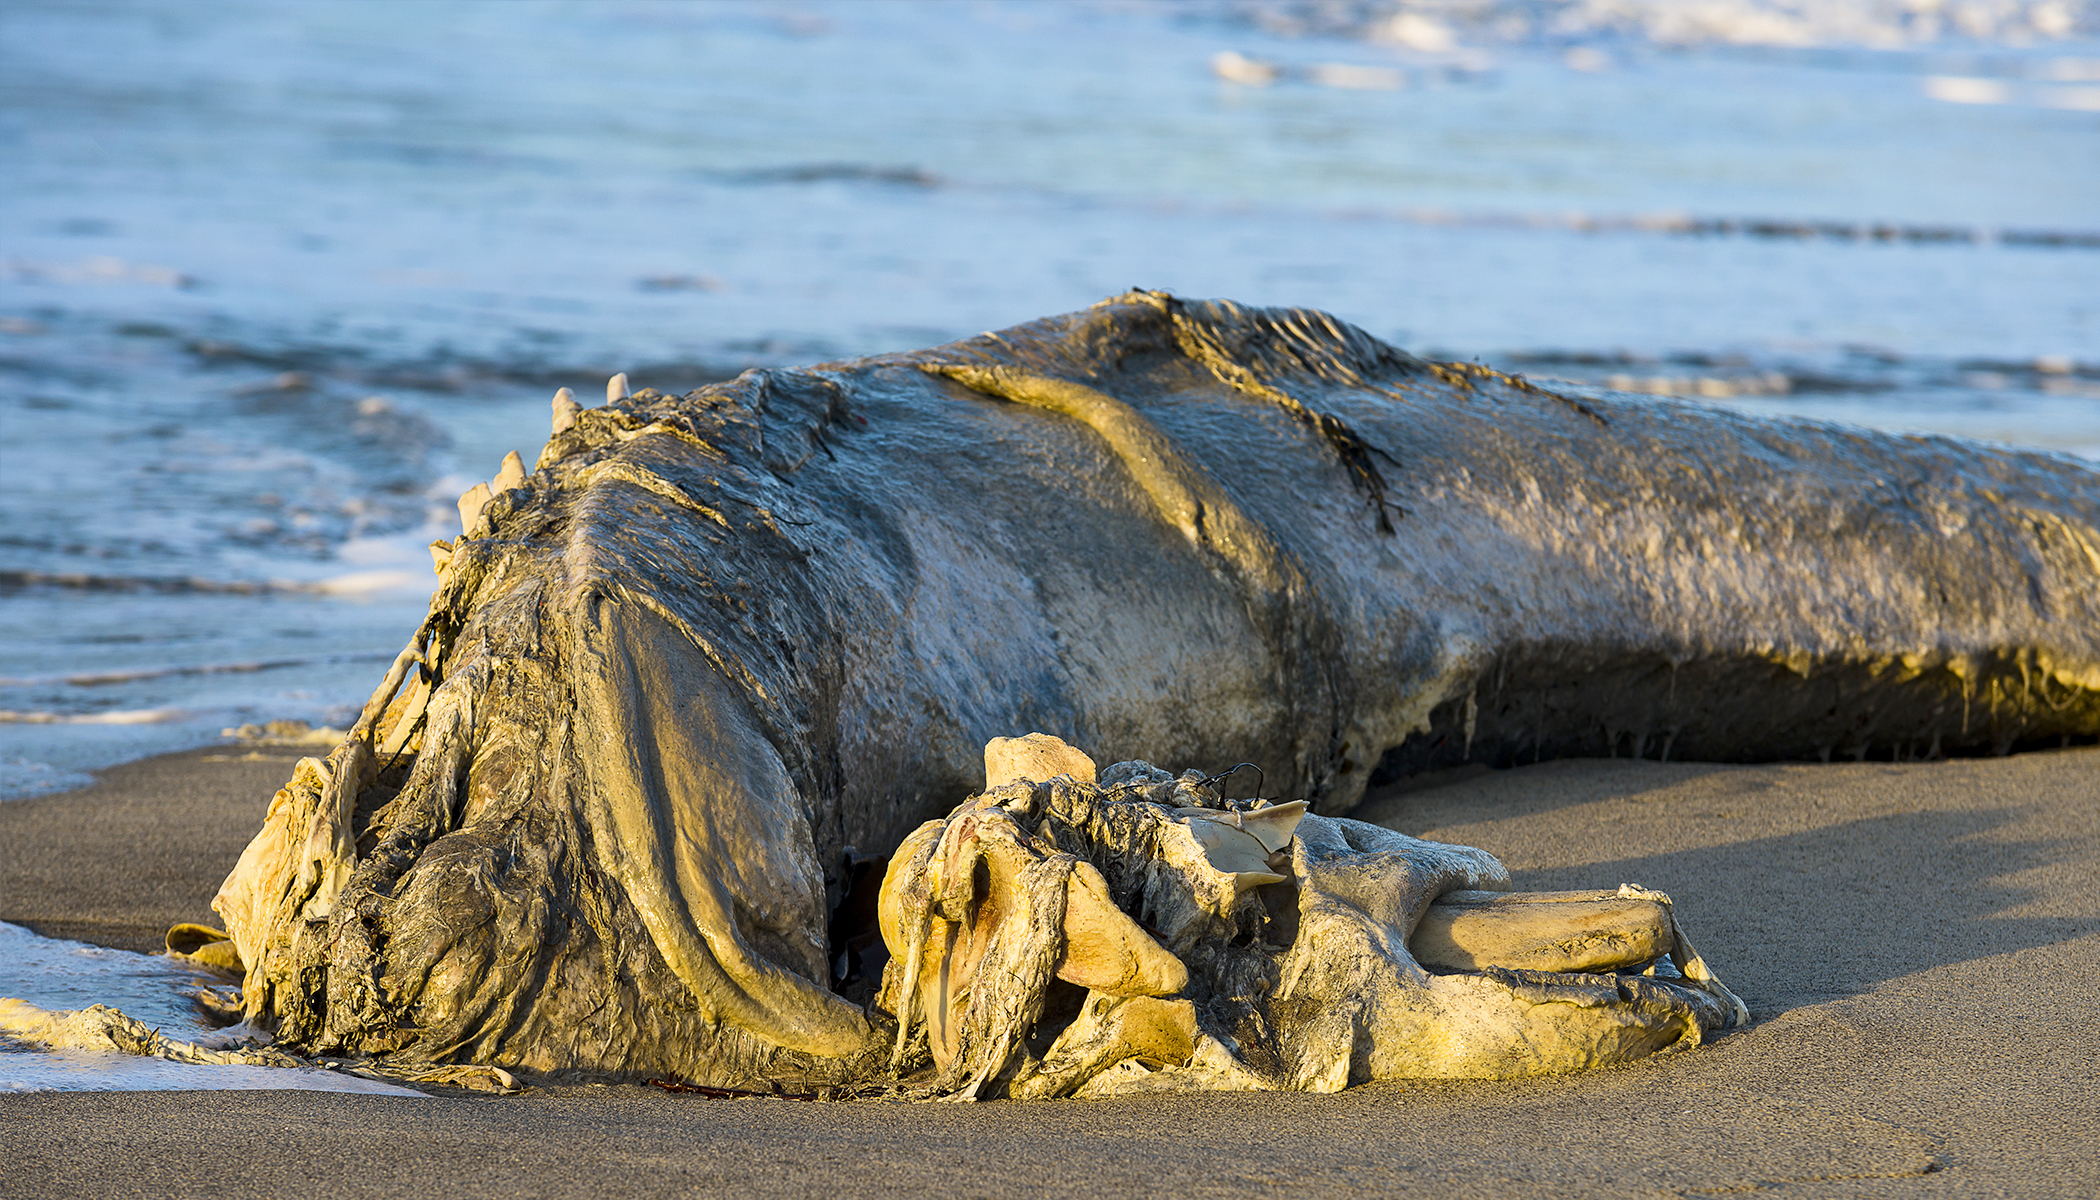 Sea Beast Washed Up on Shores, It's Like Real-Life Falkor From 'The Neverending Story'